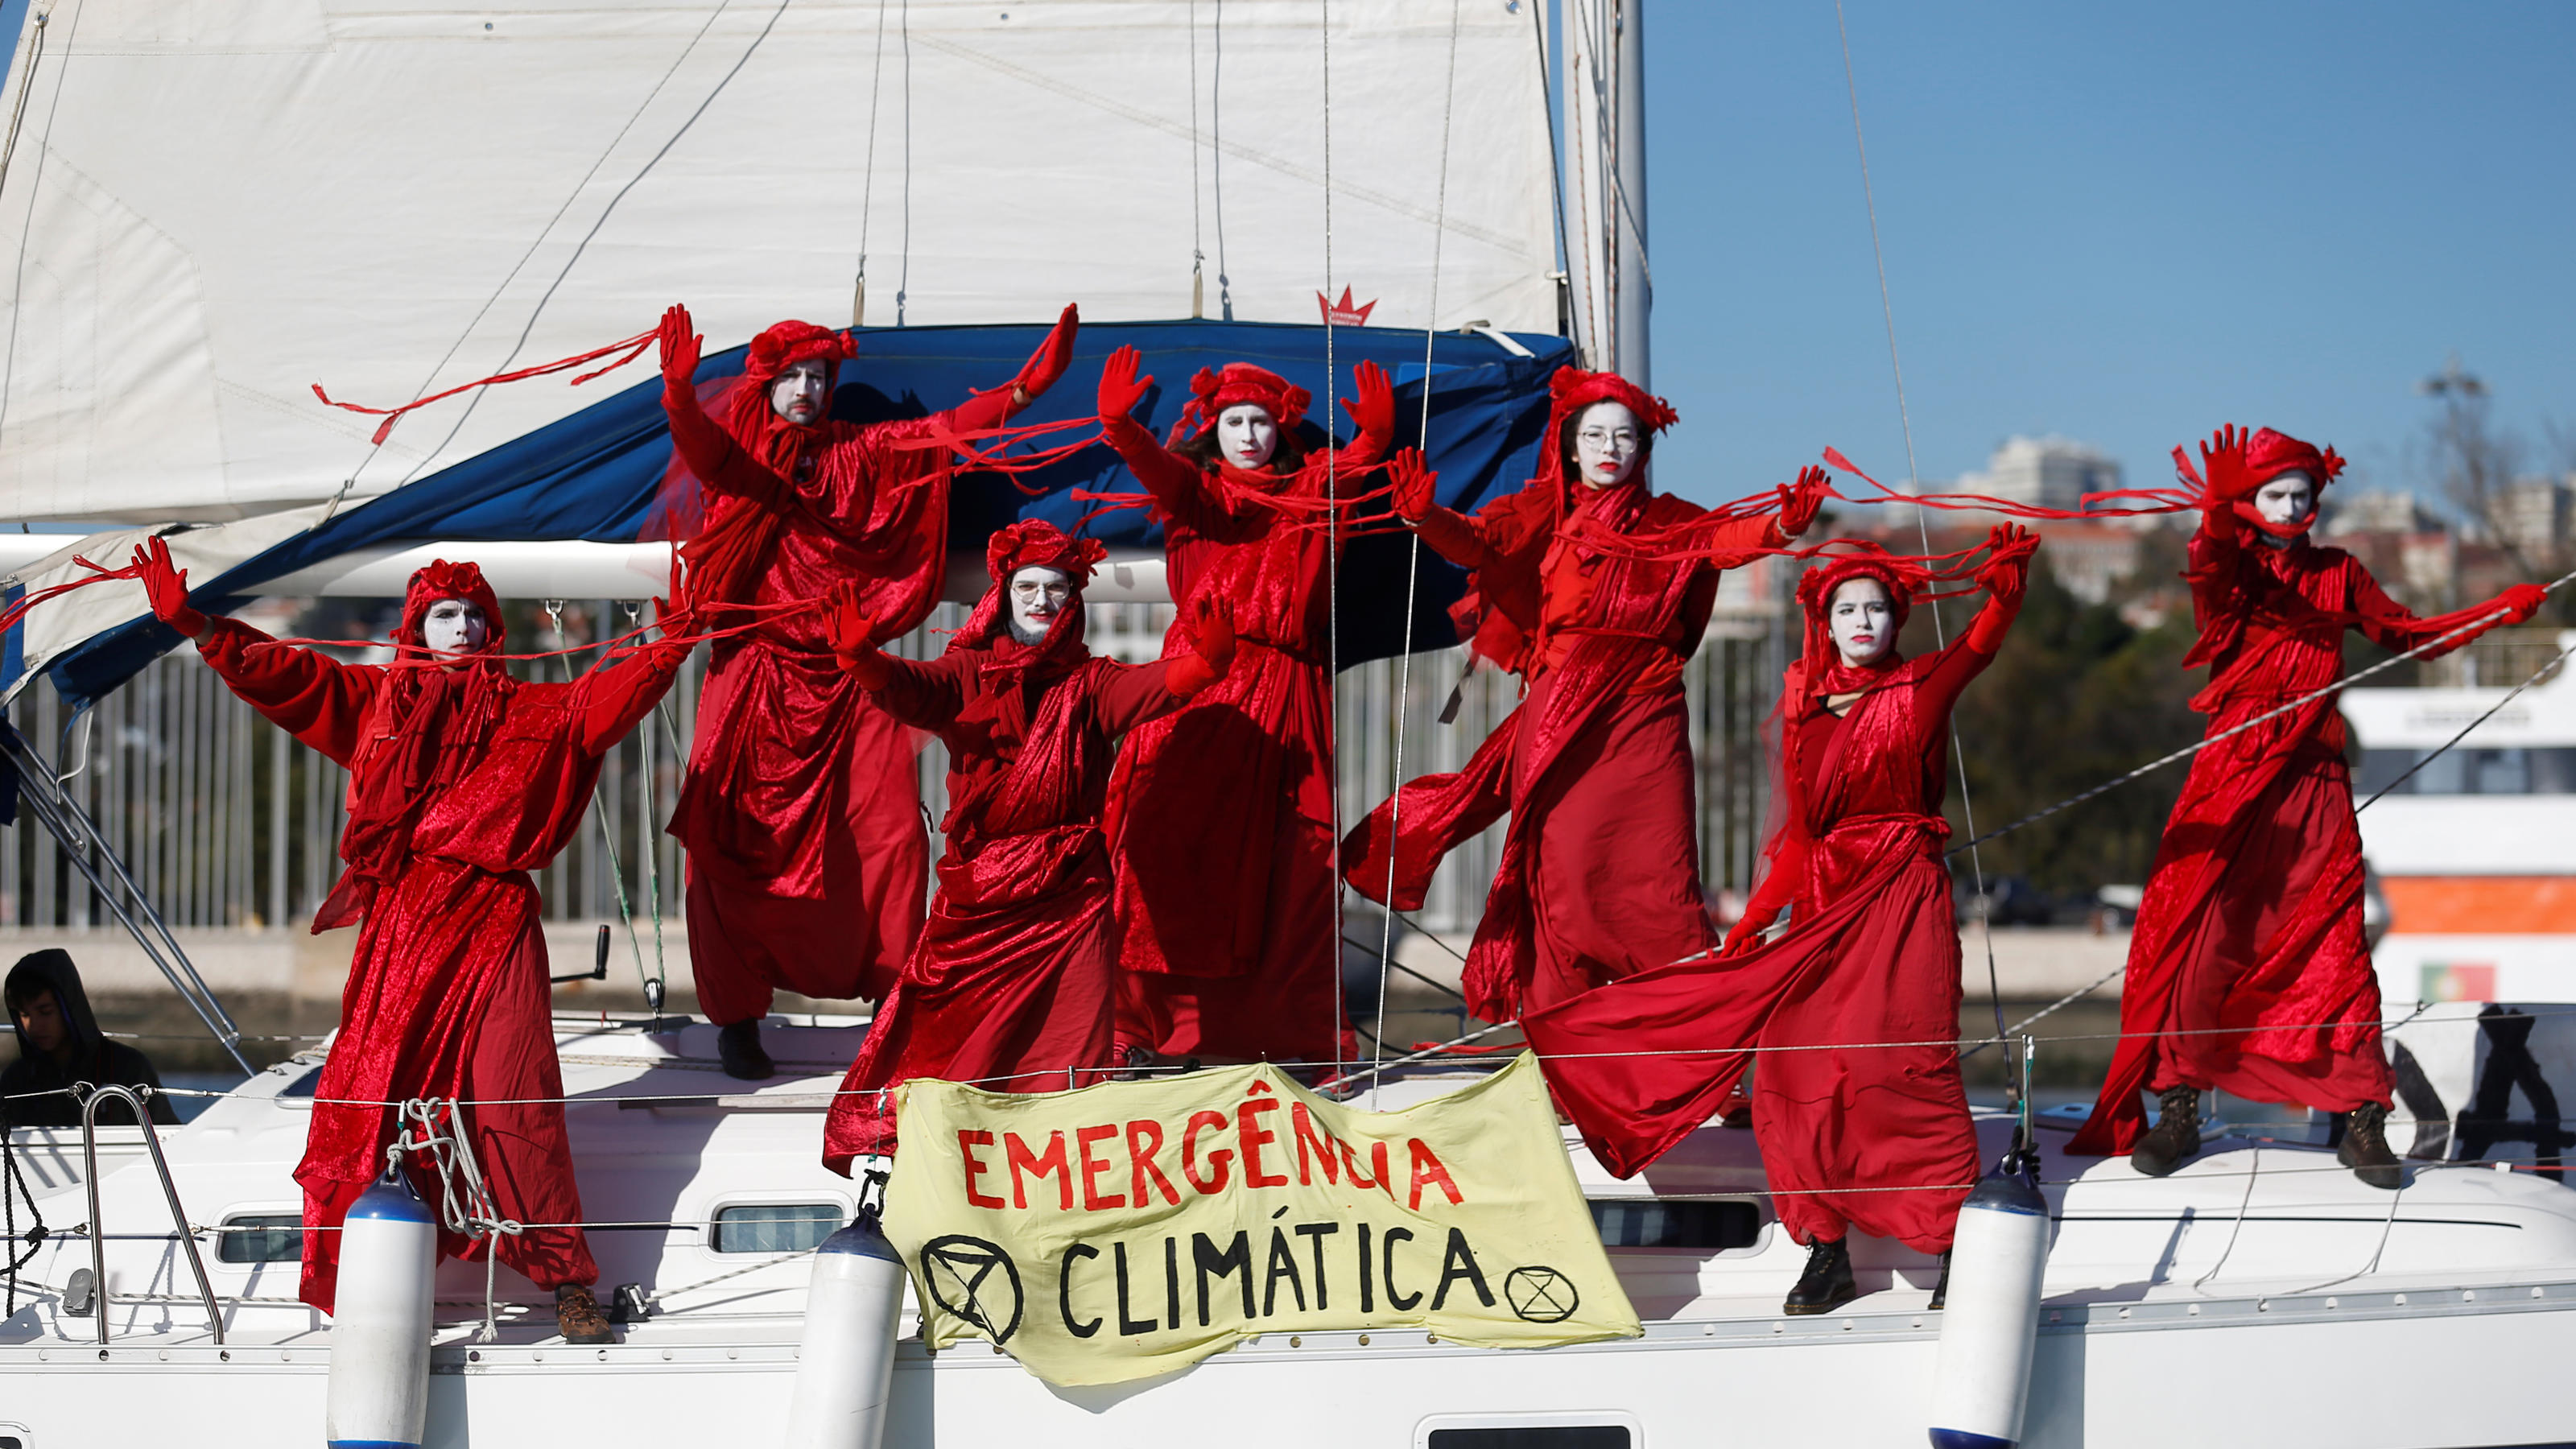 Environmental activists welcome climate change activist Greta Thunberg as she arrives aboard the yacht La Vagabonde at Santo Amaro port in Lisbon, Portugal December 3, 2019. REUTERS/Rafael Marchante